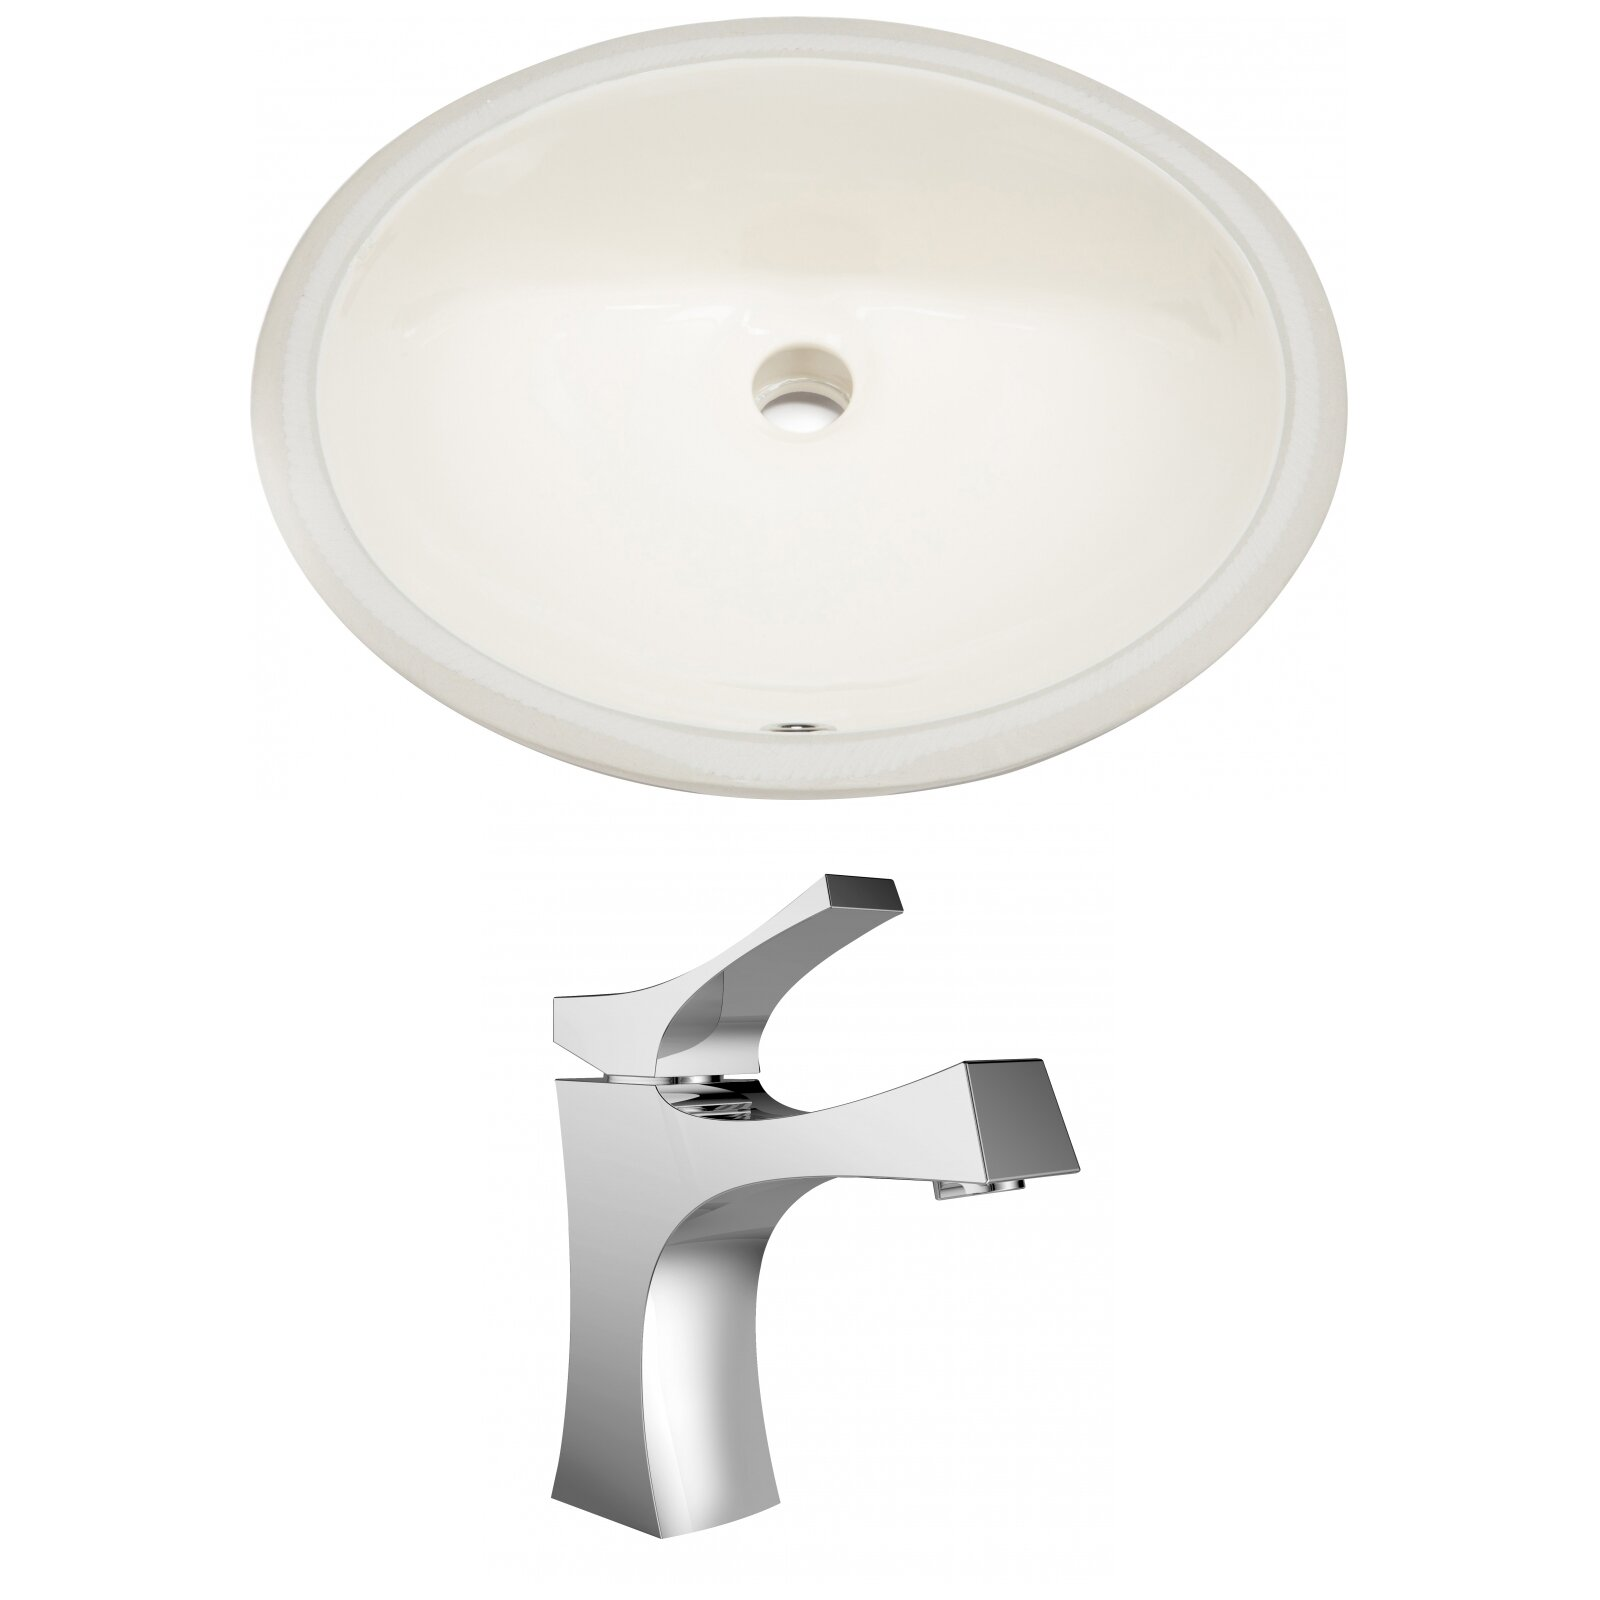 American Imaginations Cupc Ceramic Oval Undermount Bathroom Sink With Faucet And Overflow Wayfair